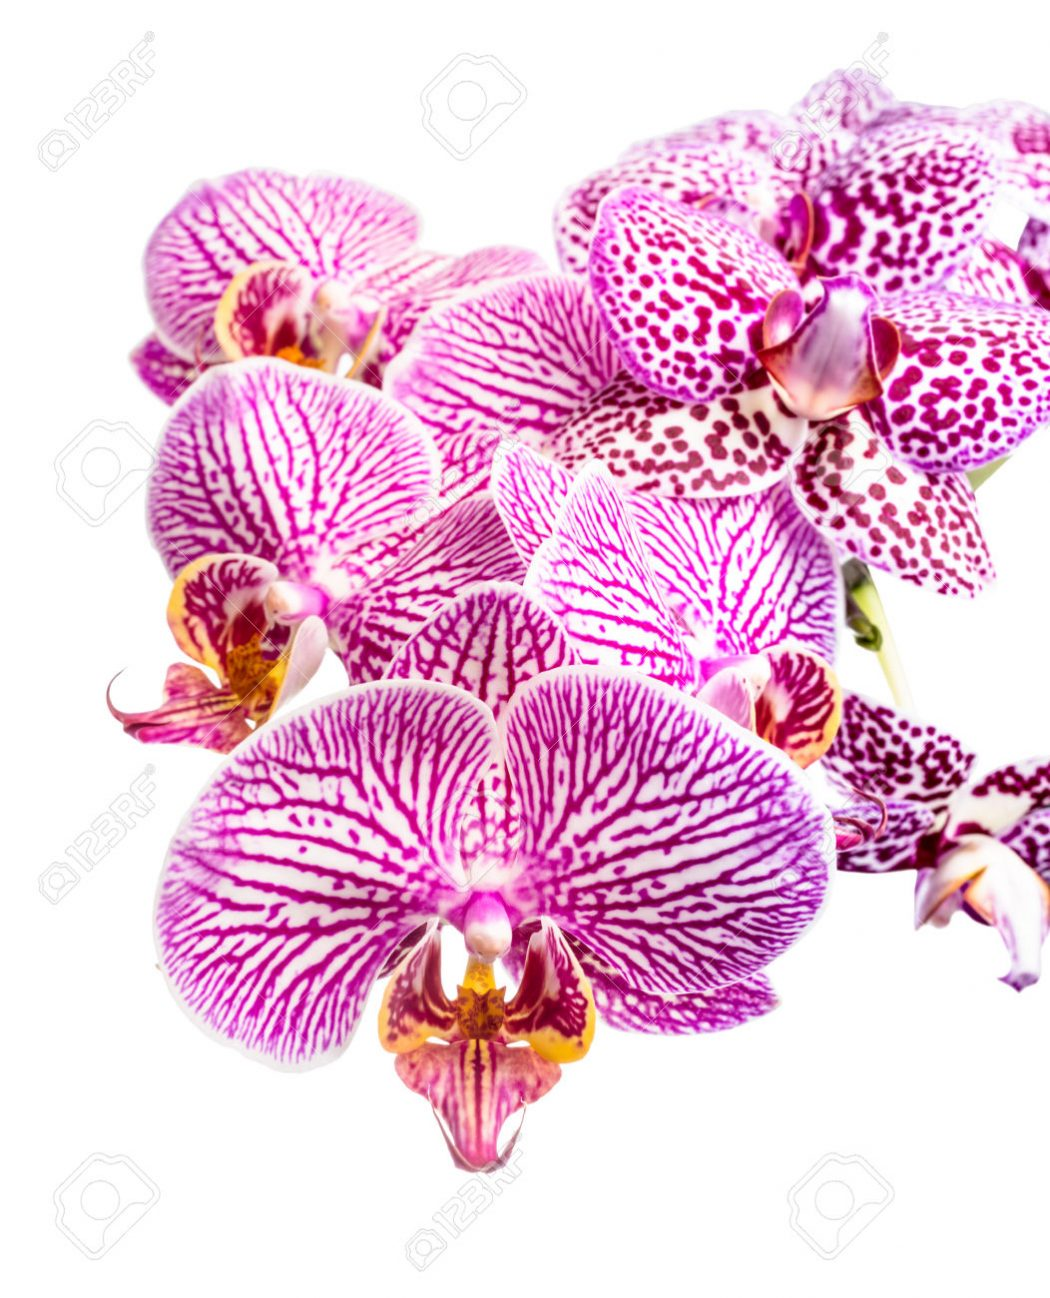 Blooming-striped-and-spotted-purple-orchids-phalaenopsis-is-isolated-on-white-background-Stock-Photo Top 10 Crazy Looking Flowers That will Surprise You ...